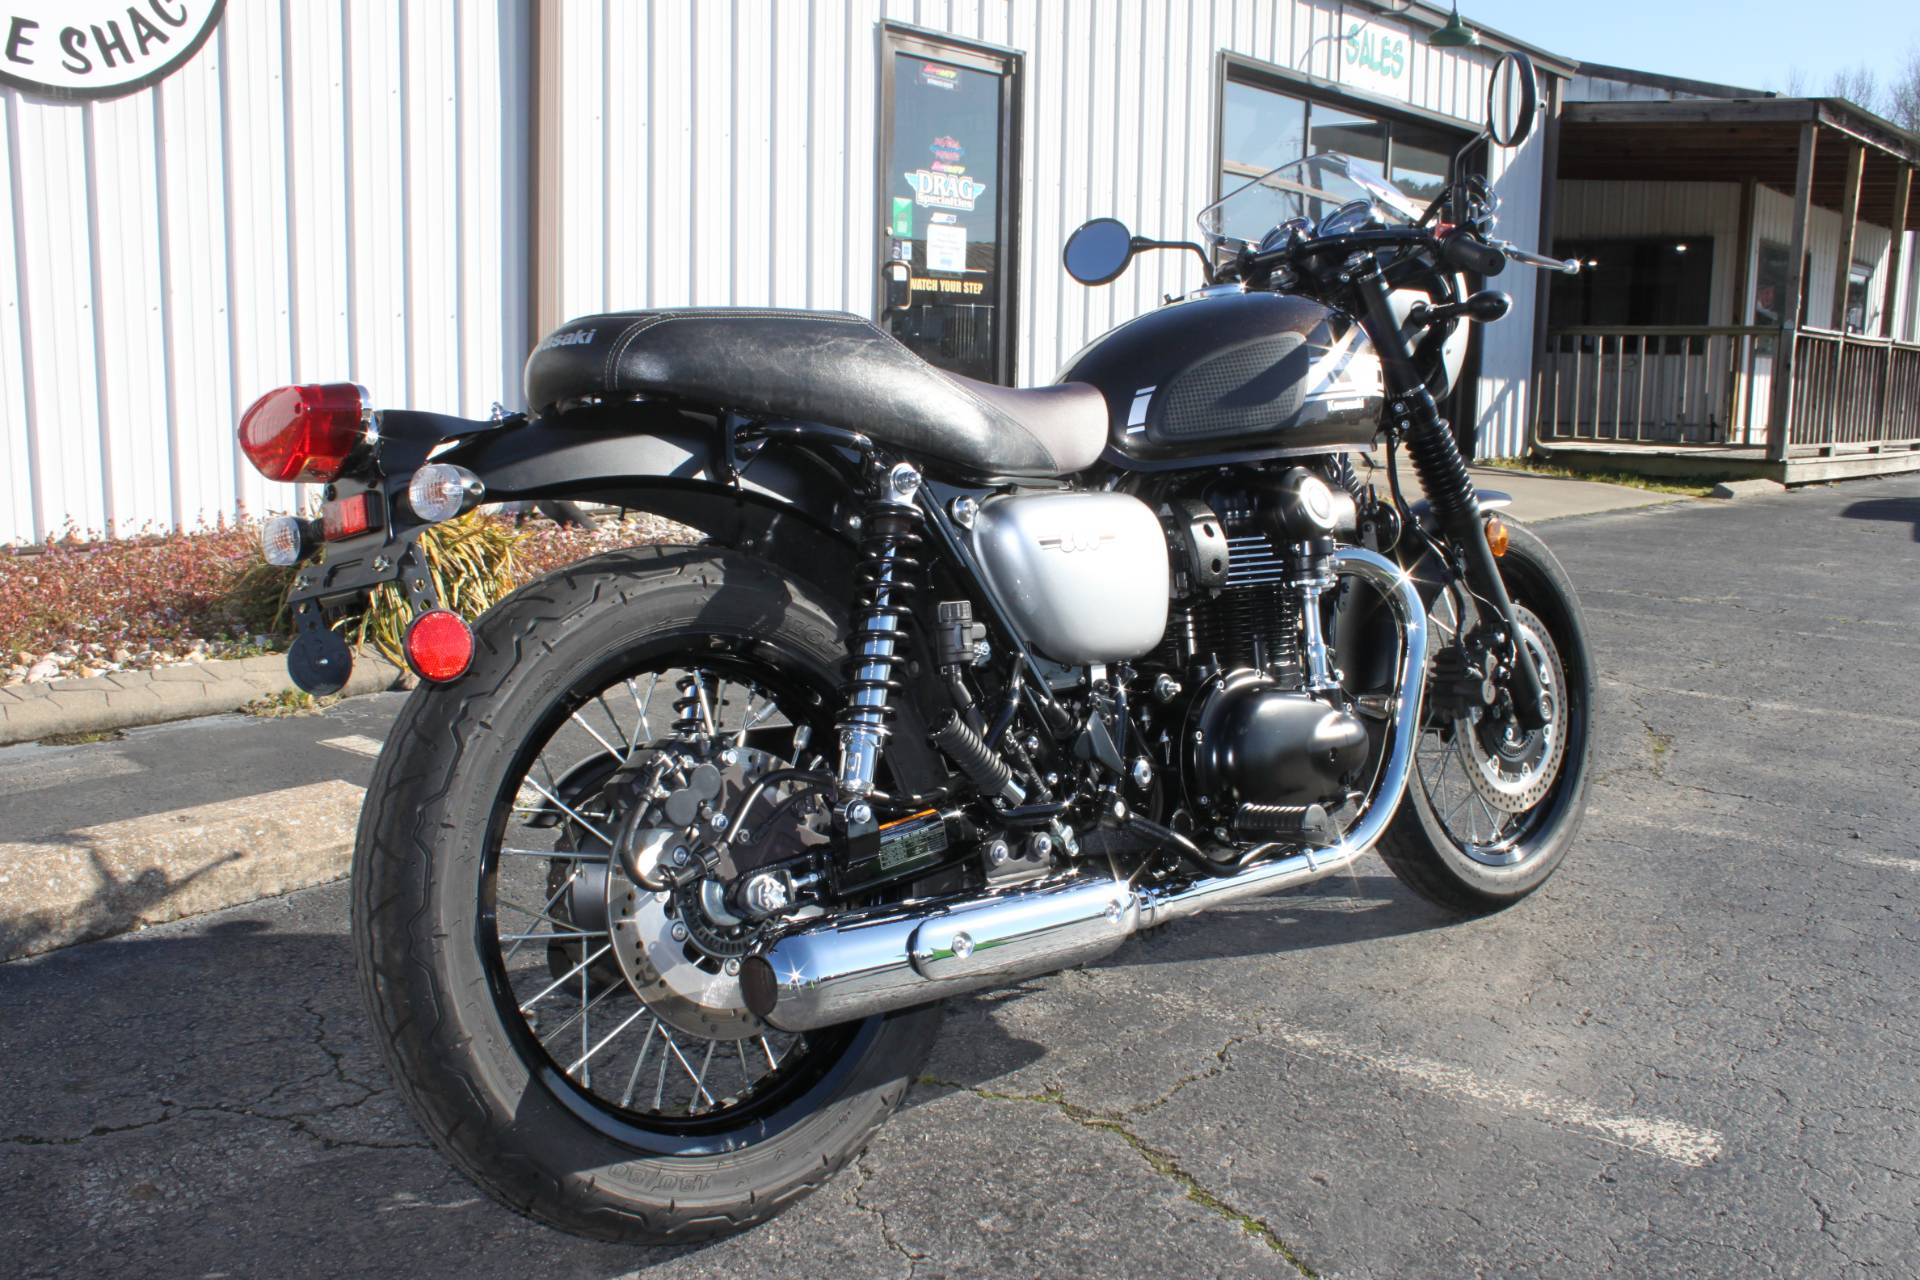 2019 Kawasaki W800 CAFE in Greenbrier, Arkansas - Photo 3